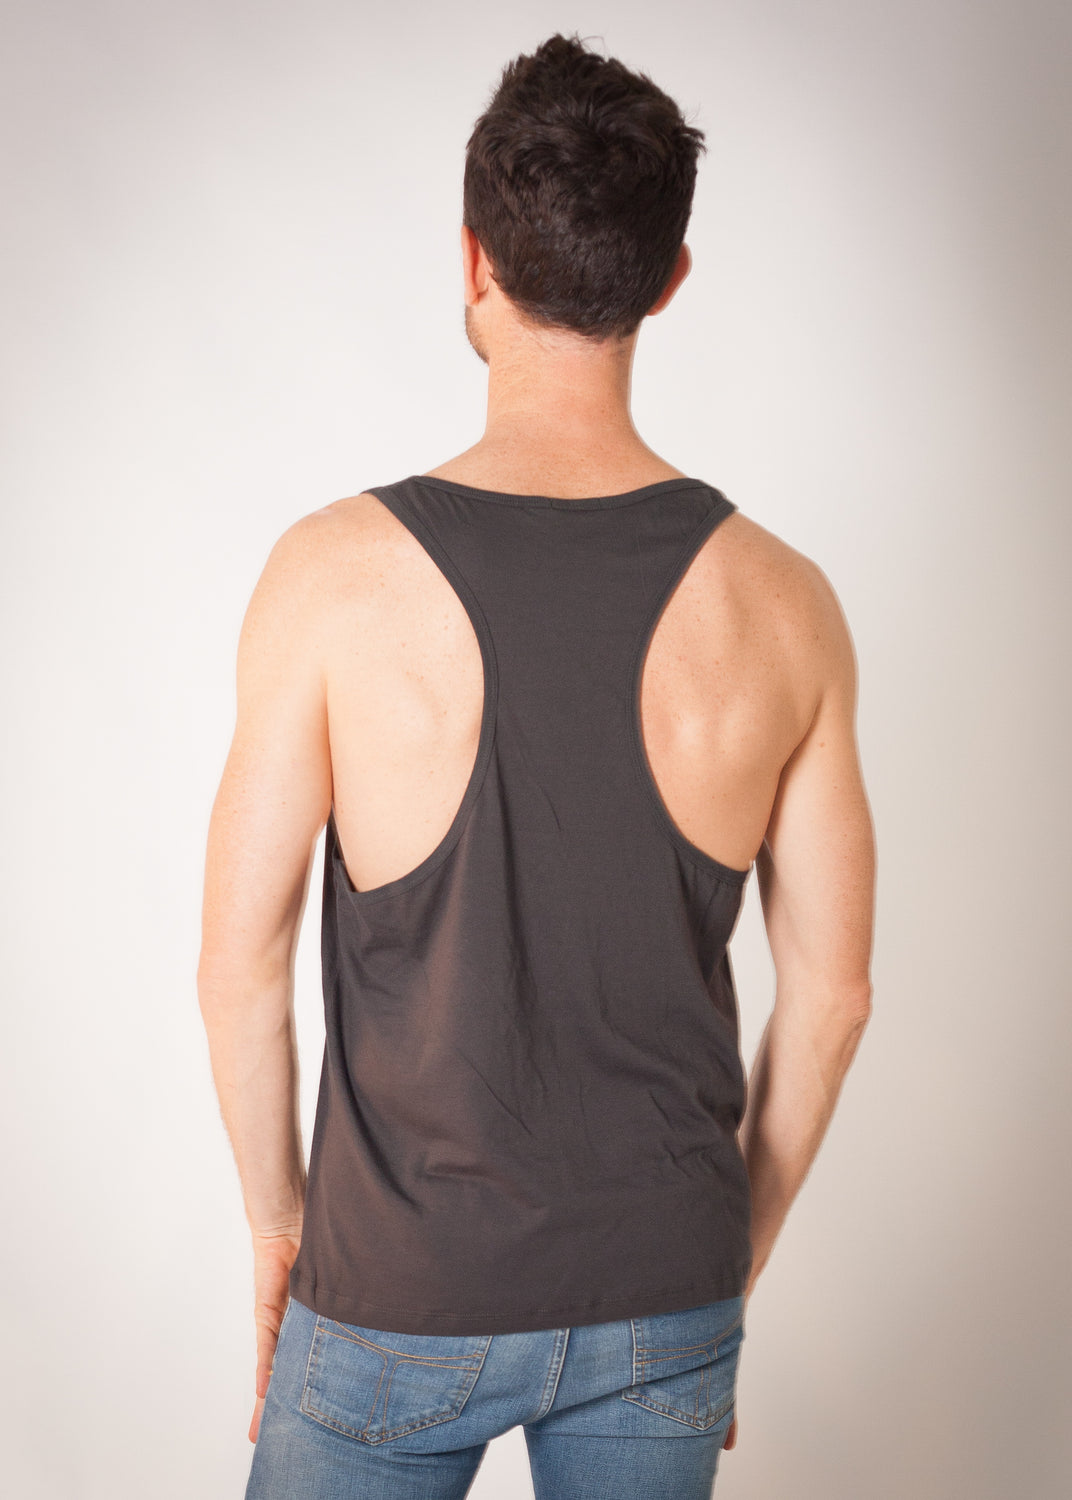 Sweat! Bold Intention Racerback Singlet